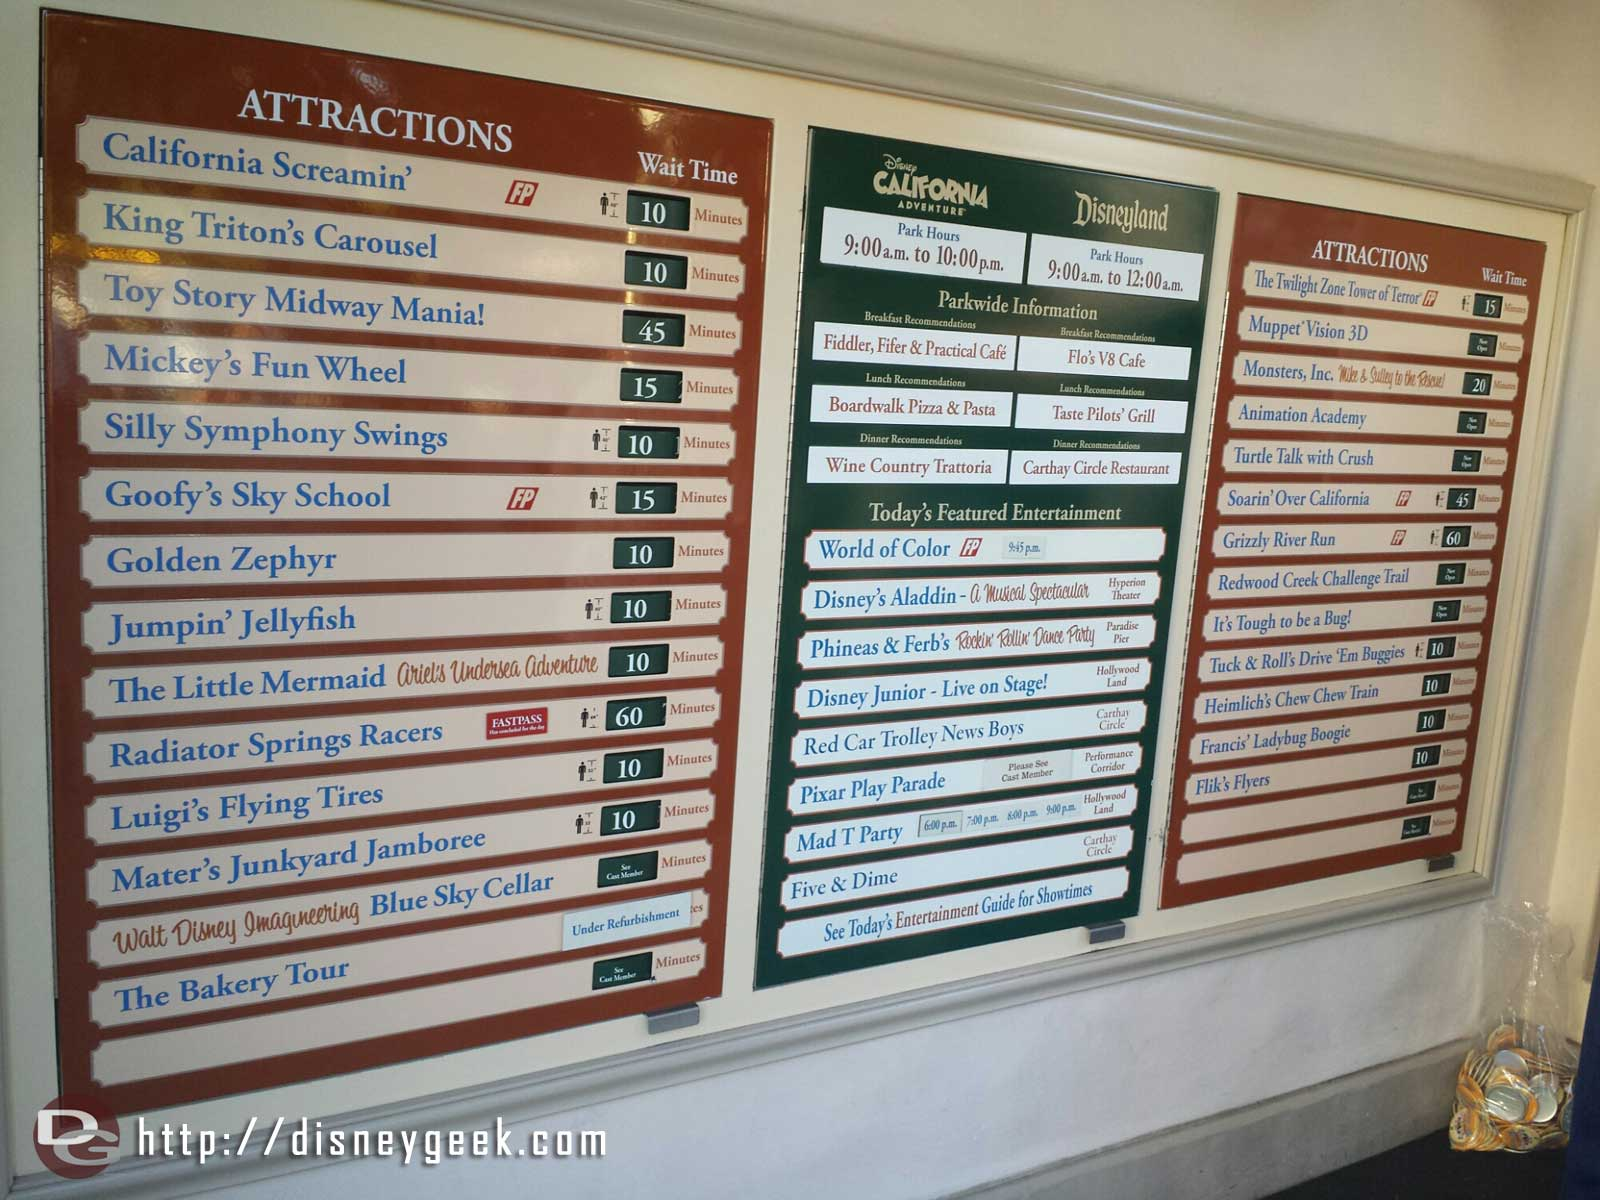 Disney California Adventure waits as of 4:42pm only 60 min for Radiator Springs Racers